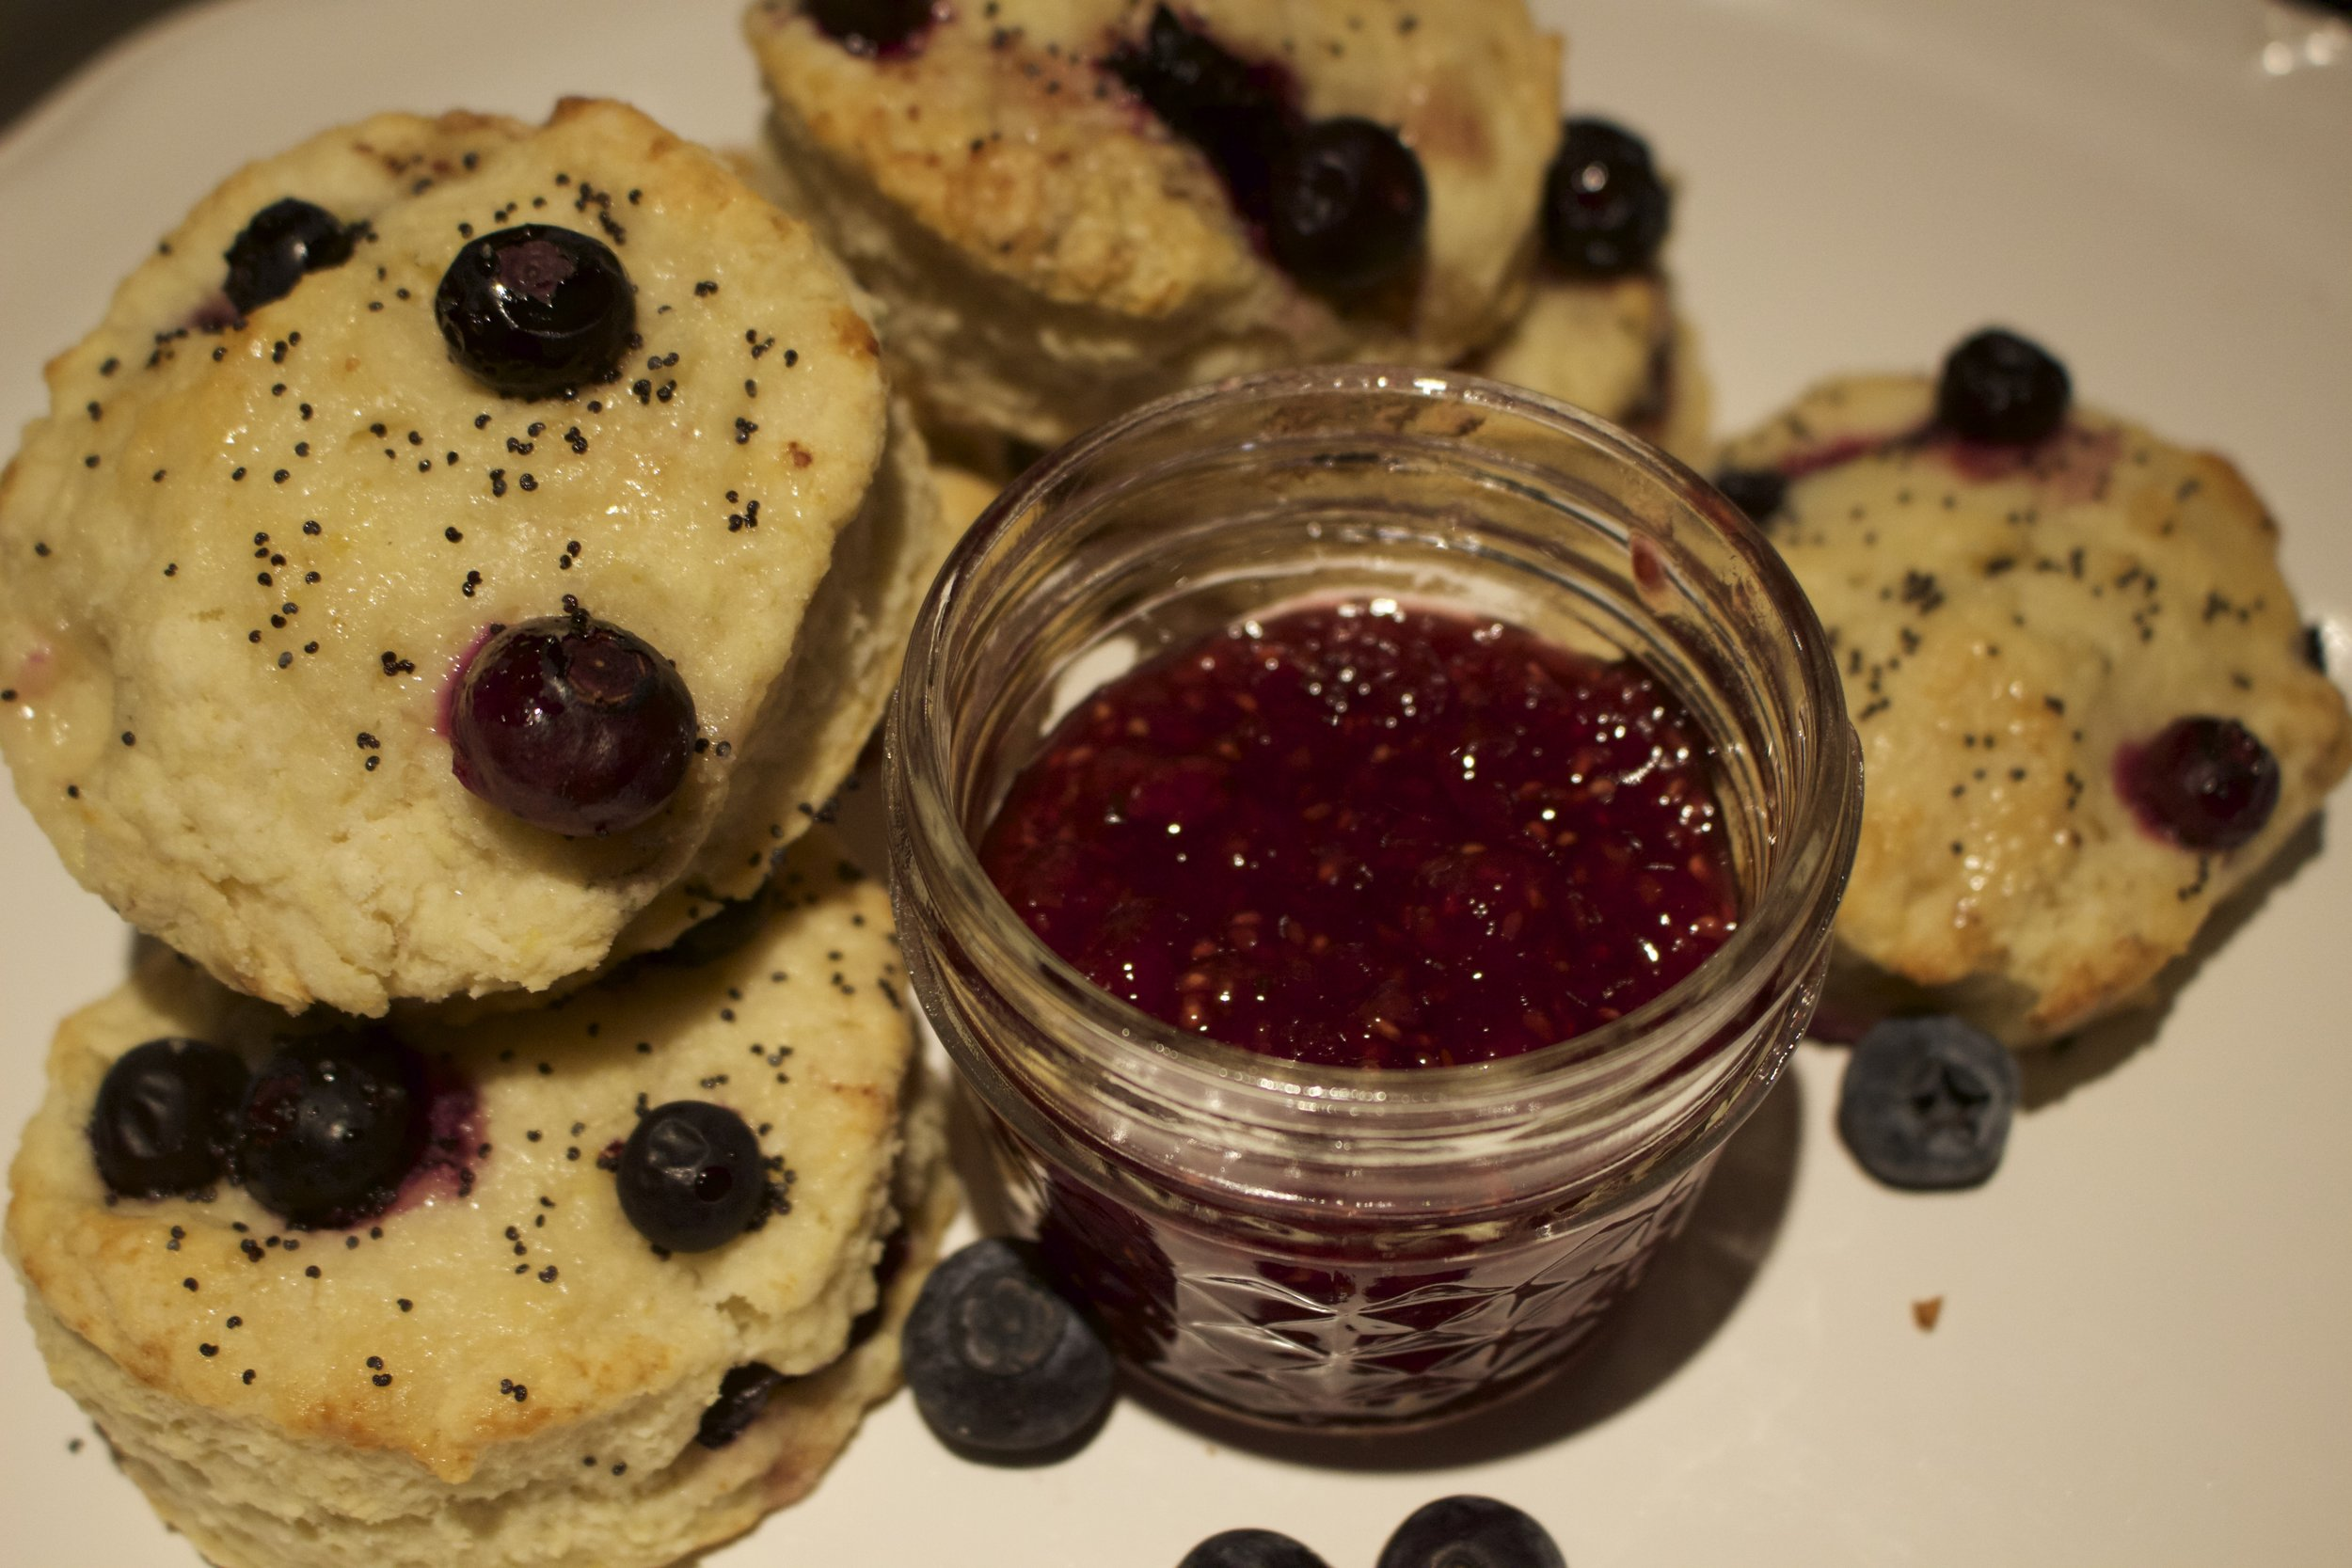 Delicious with butter or jam or on their own!